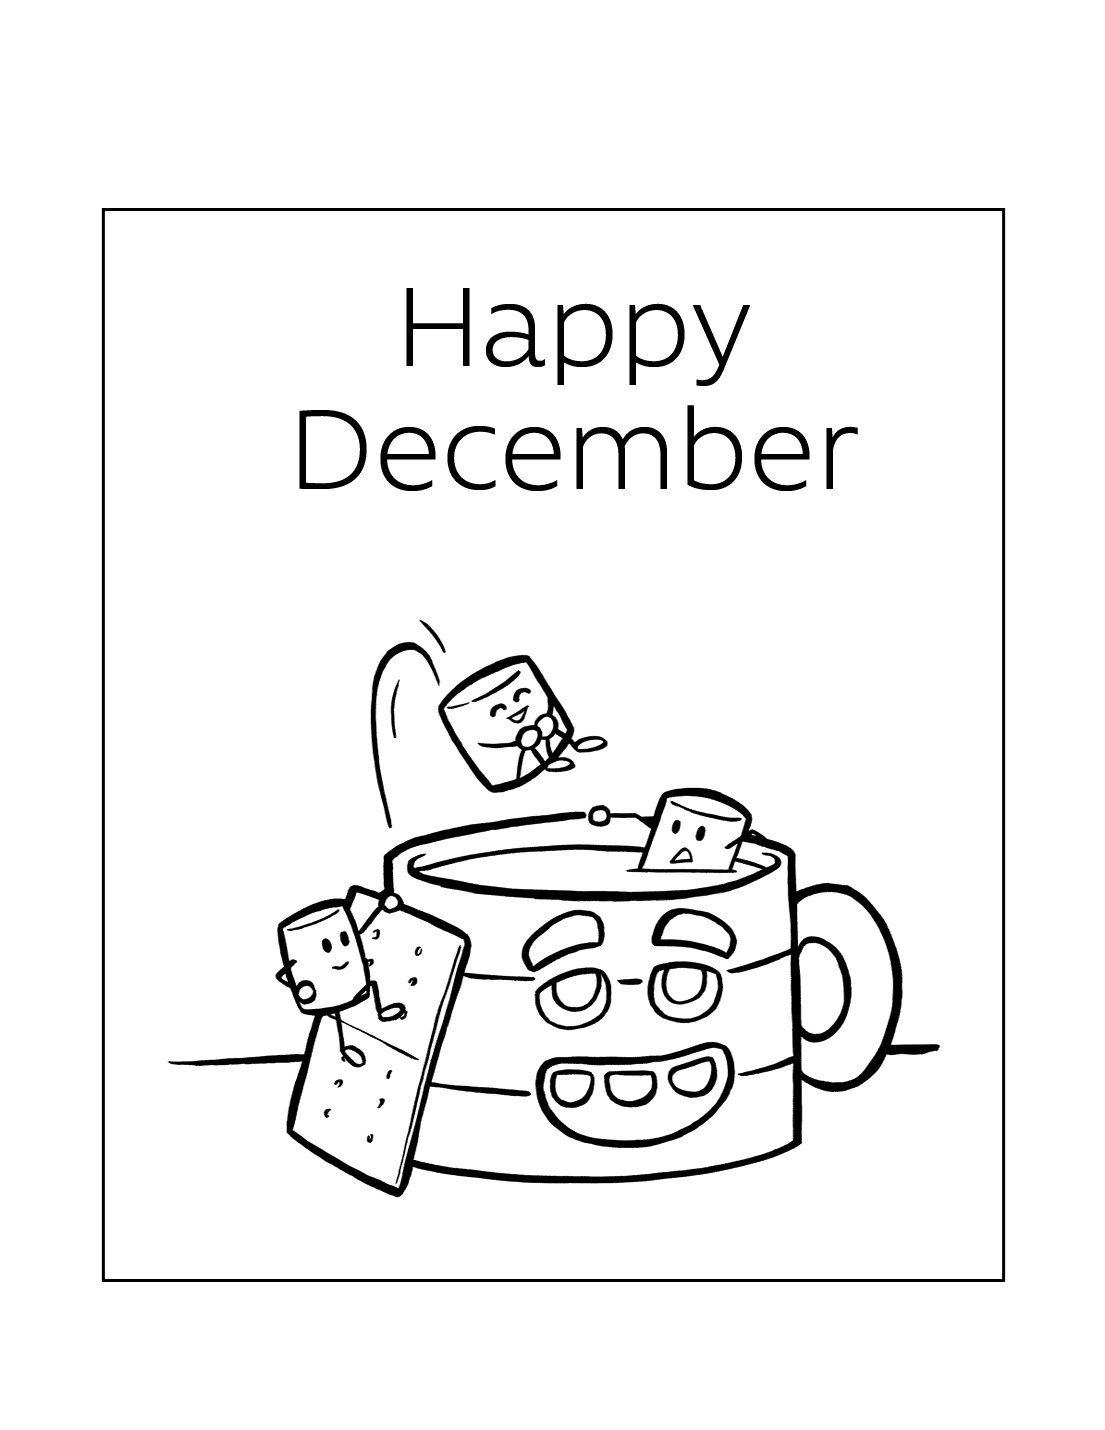 Happy December Coloring Pages